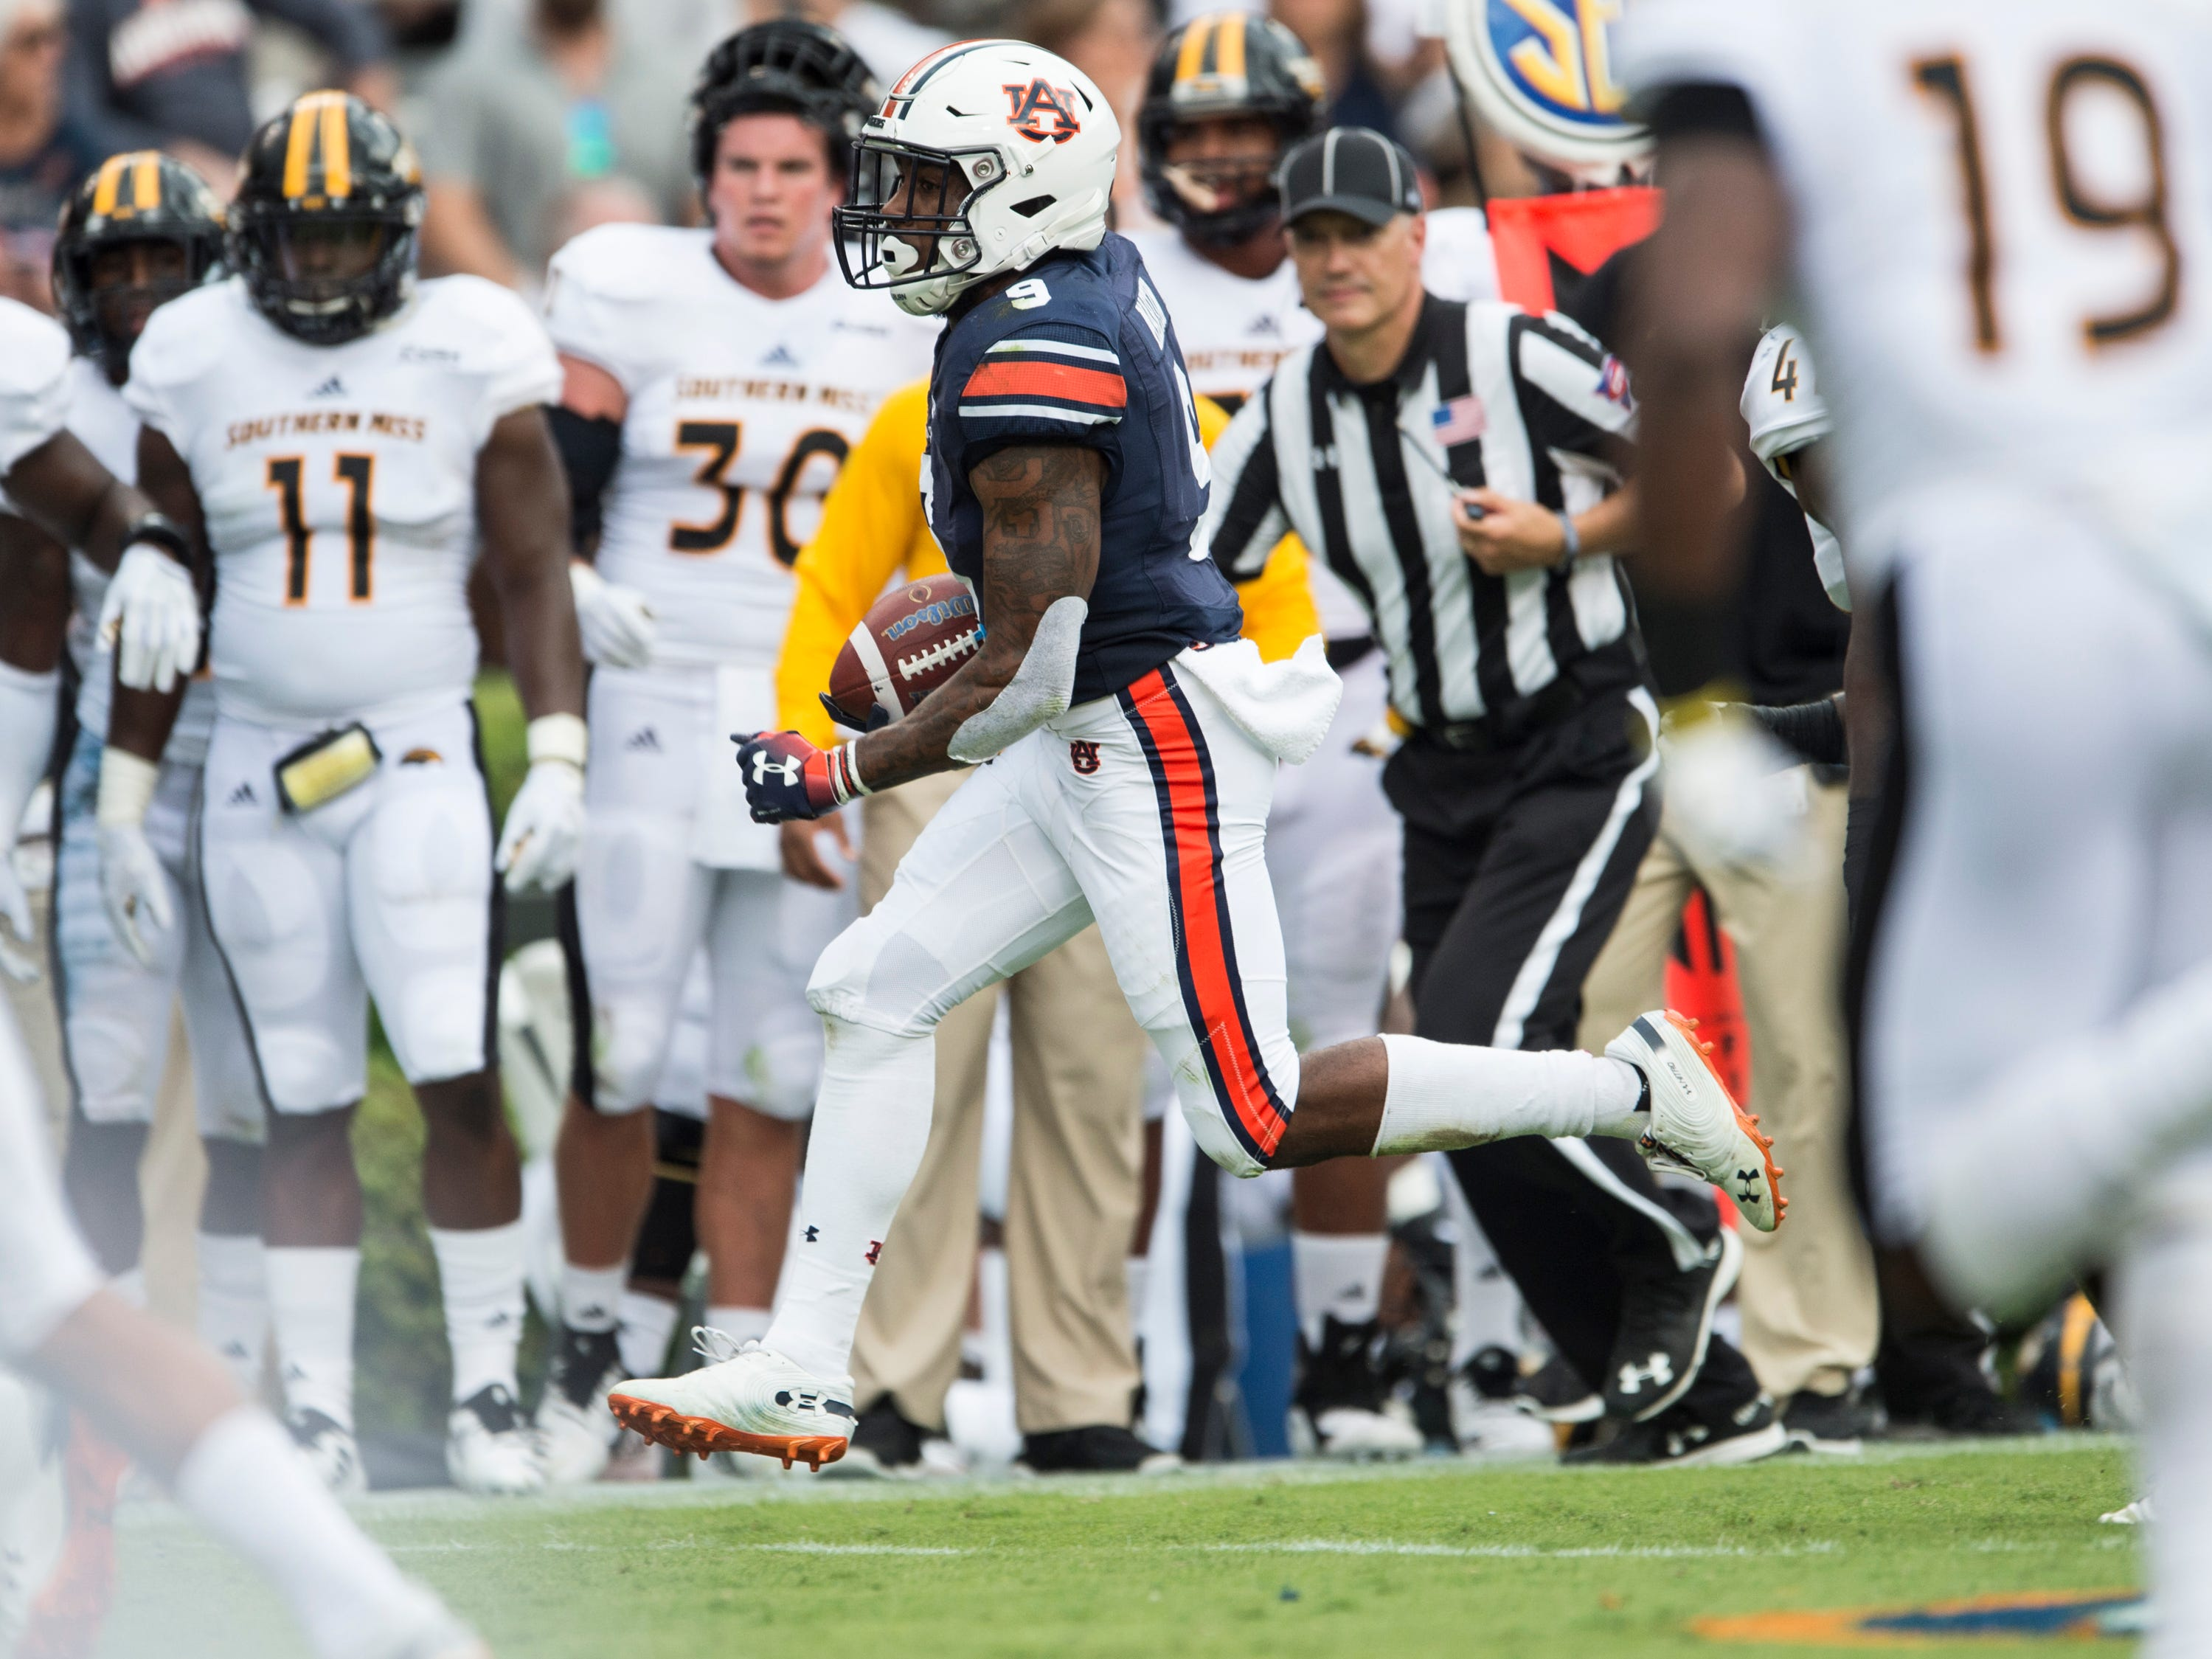 Auburn's Kam Martin (9) runs the ball down the field against Southern Miss at Jordan-Hare Stadium in Auburn, Ala., on Saturday, Sept. 29, 2018. Auburn leads Southern Miss 14-3, the game went into a weather delay with 4:27 left in the second quarter.